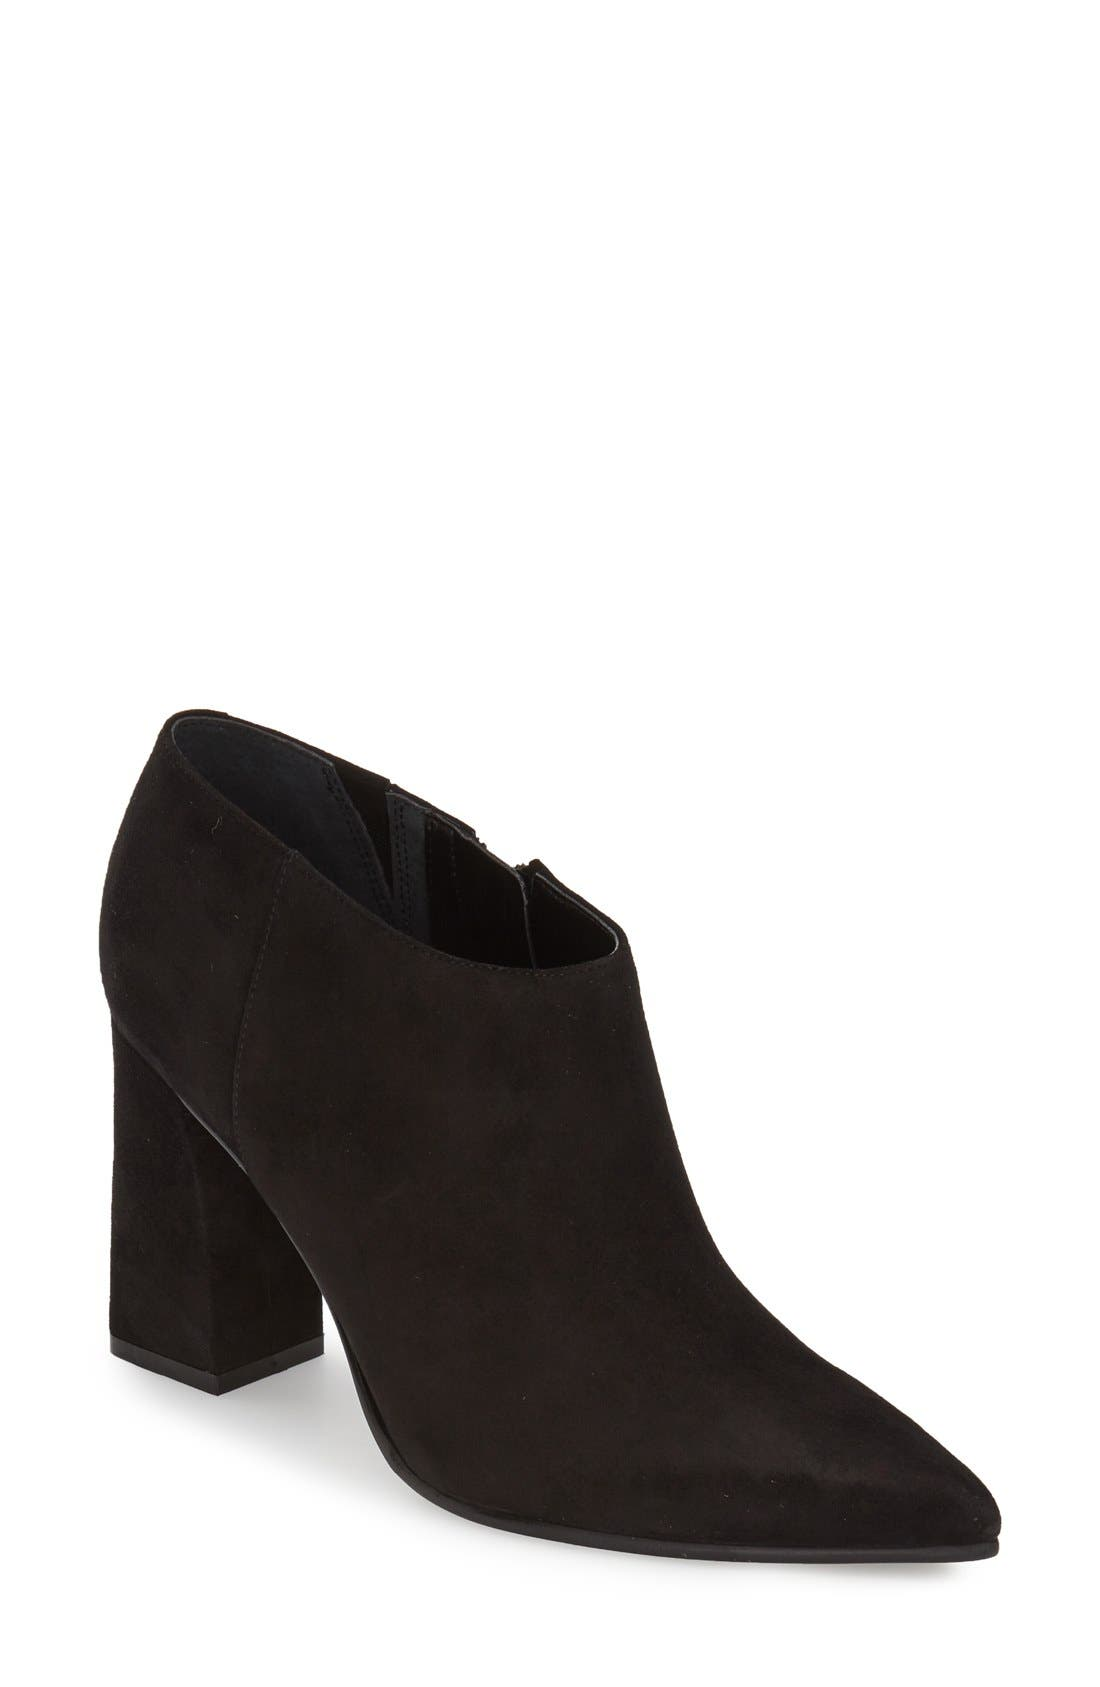 'Jayla' Block Heel Bootie,                             Main thumbnail 1, color,                             Black Suede